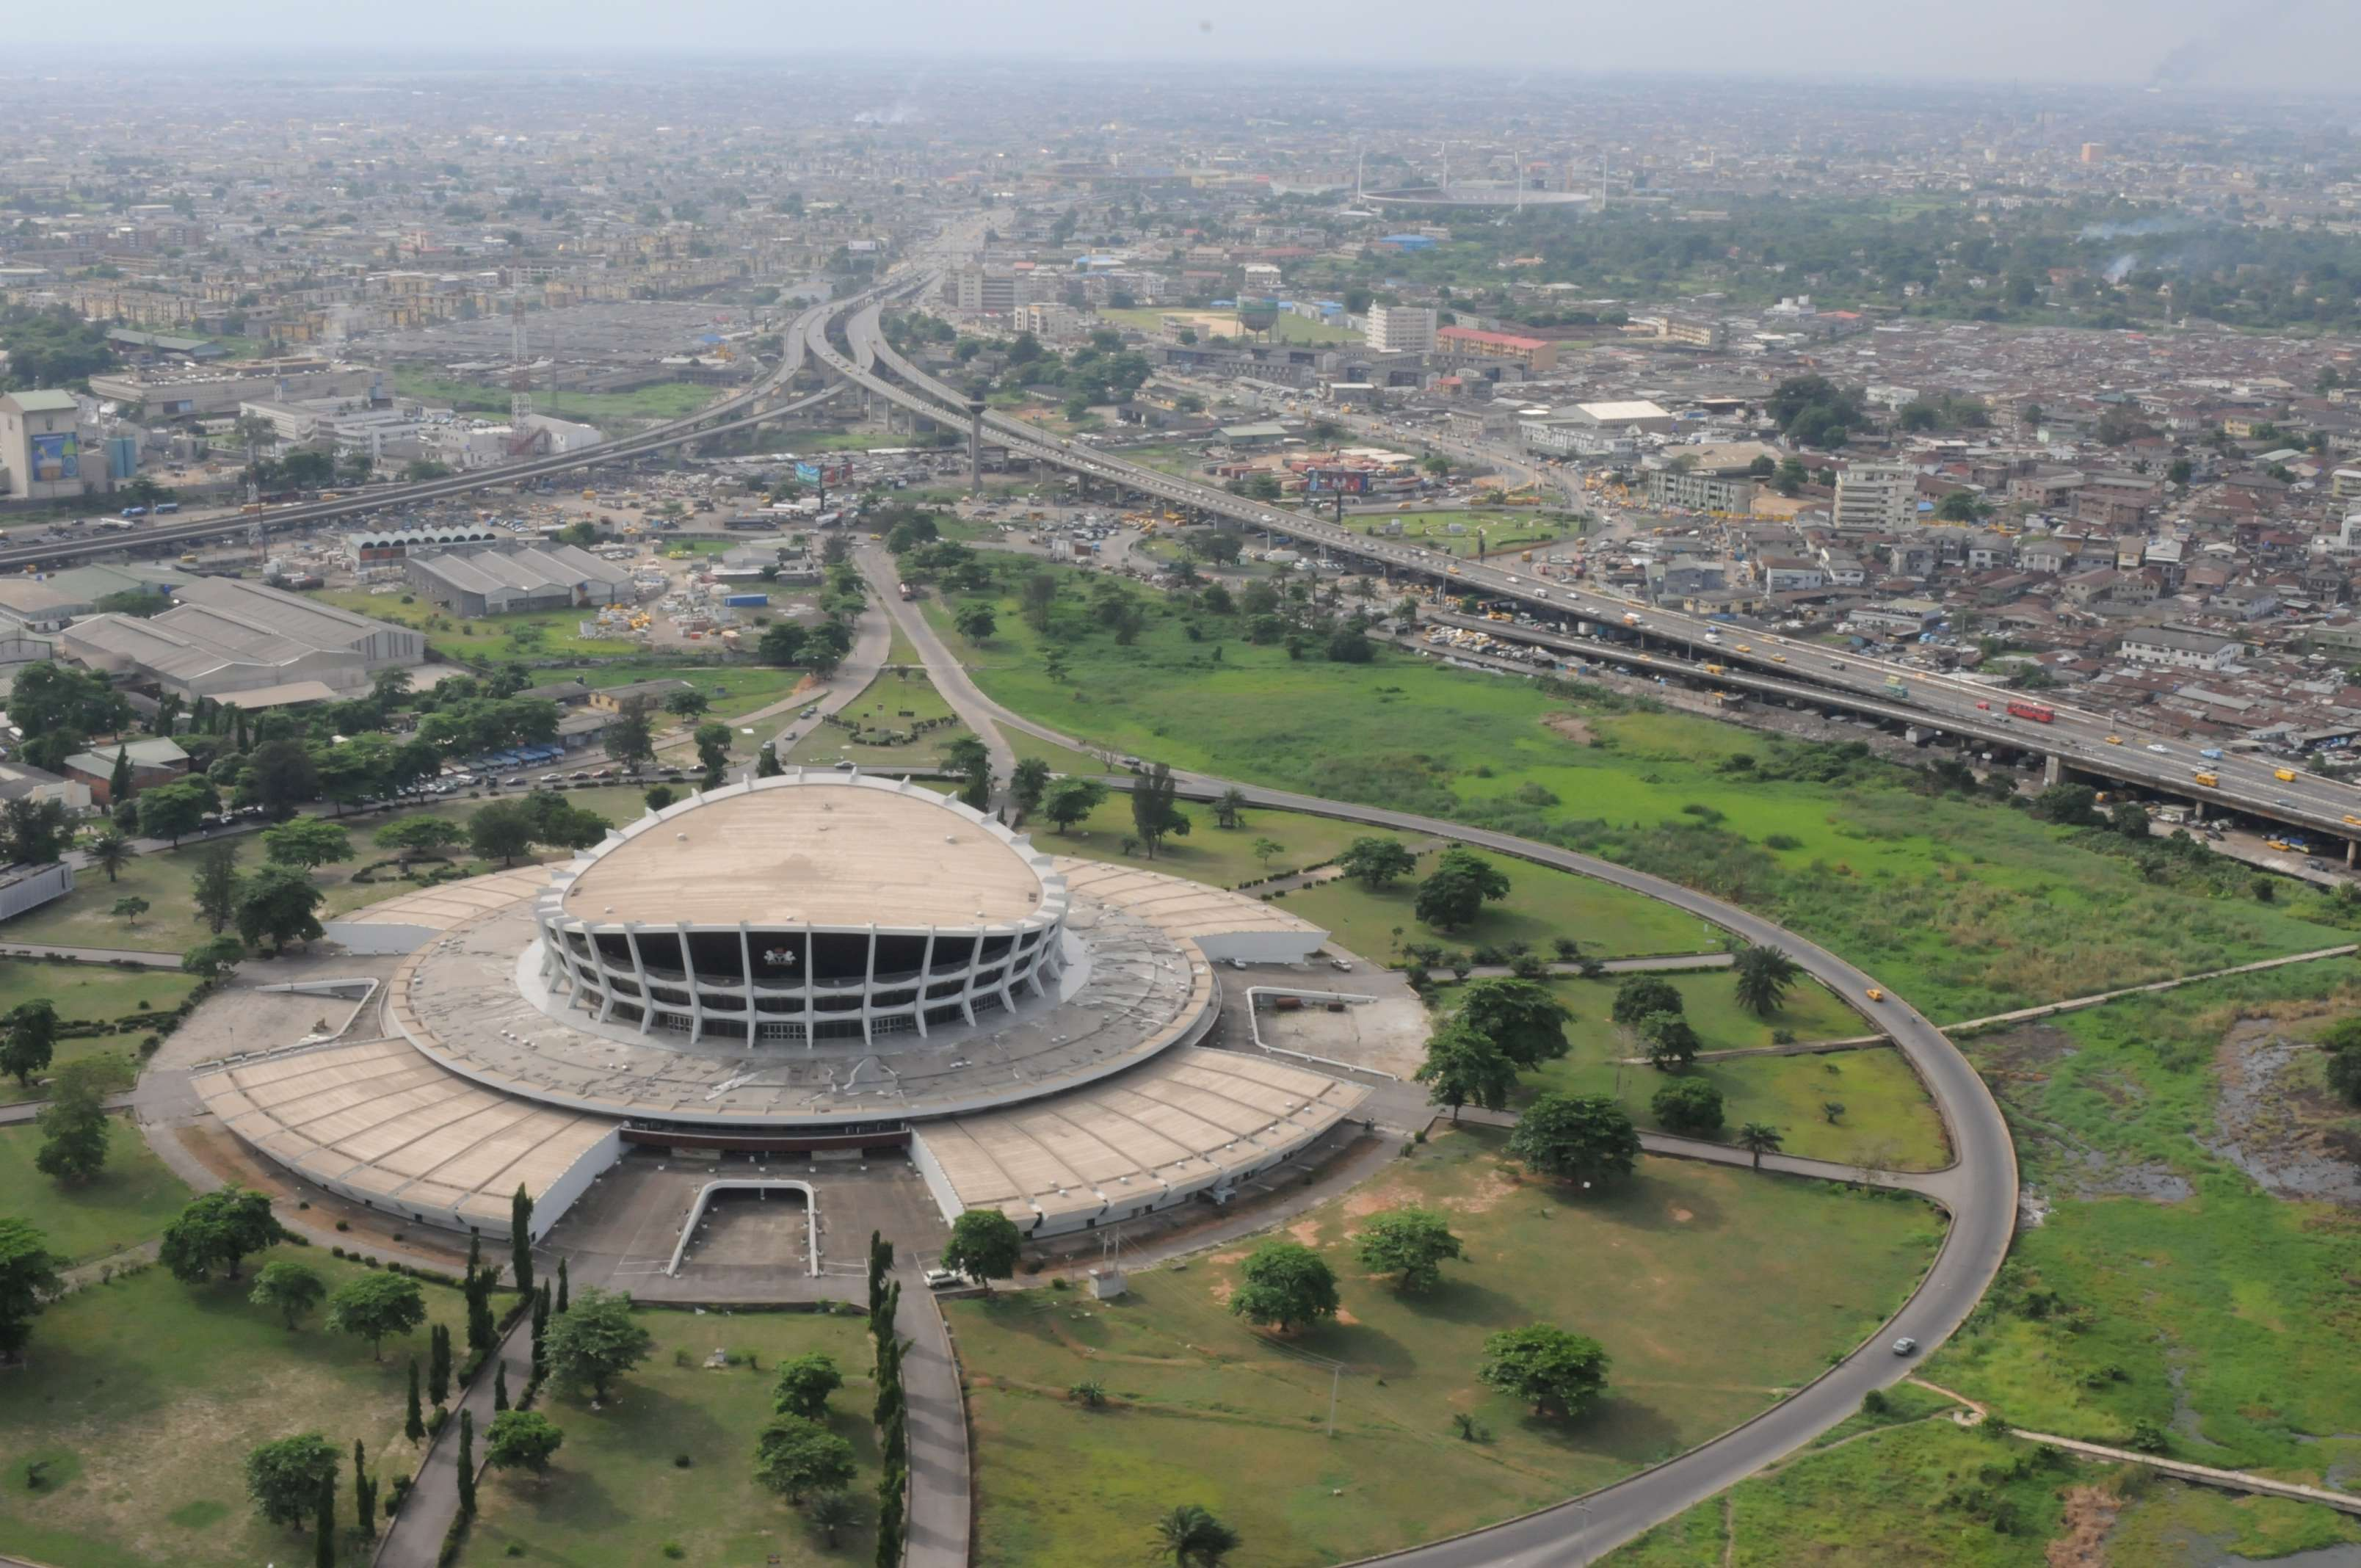 The Nigeria National Theatre